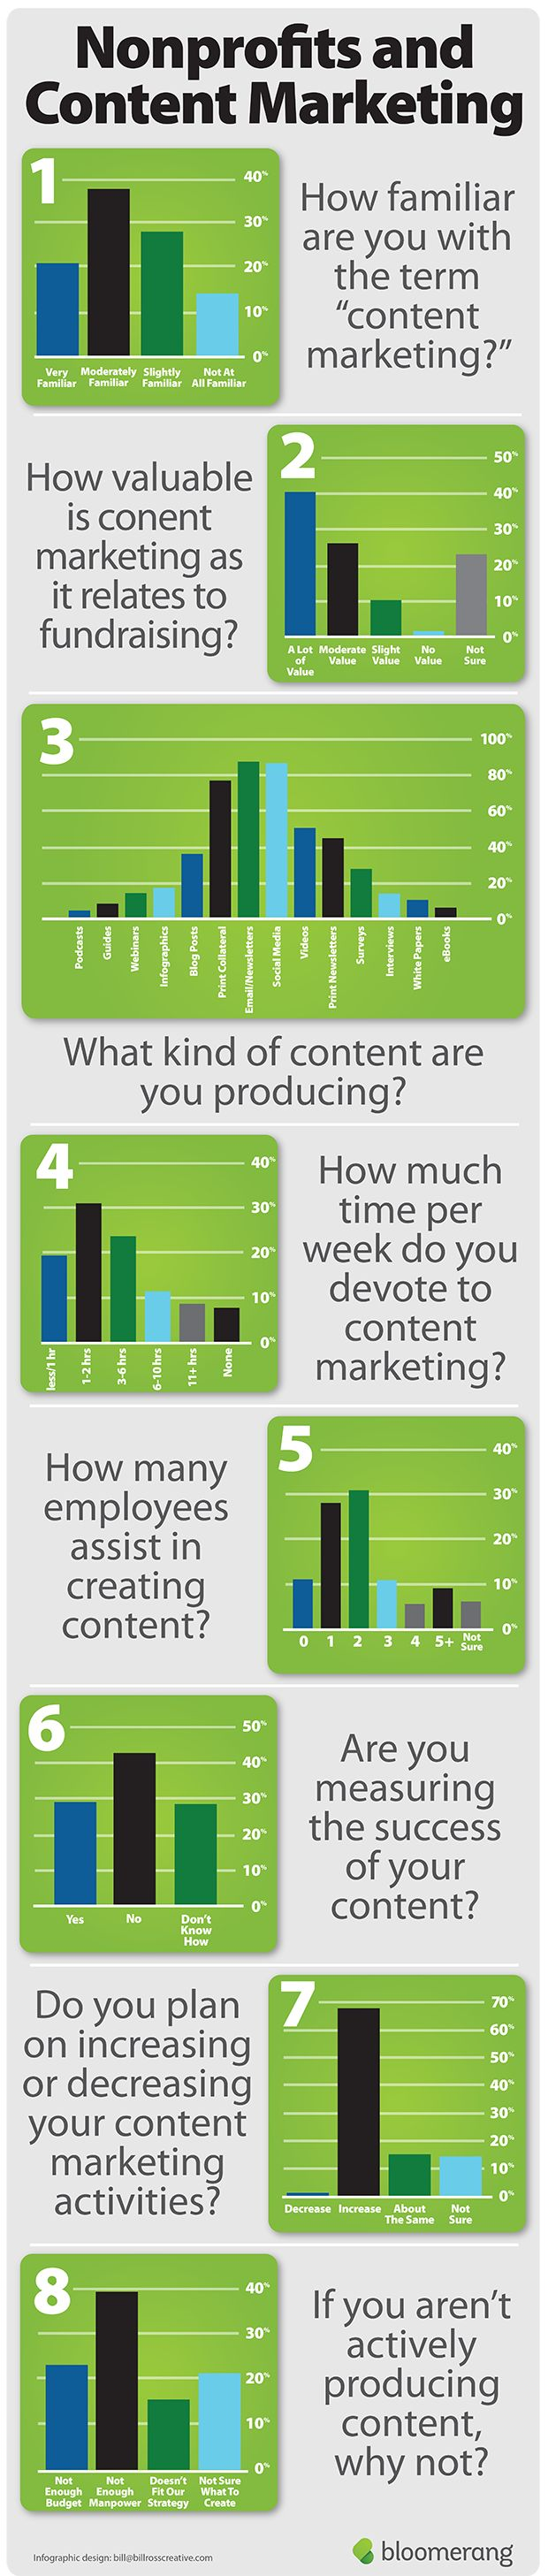 Nonprofits and content marketing #infografia #infographic #marketing